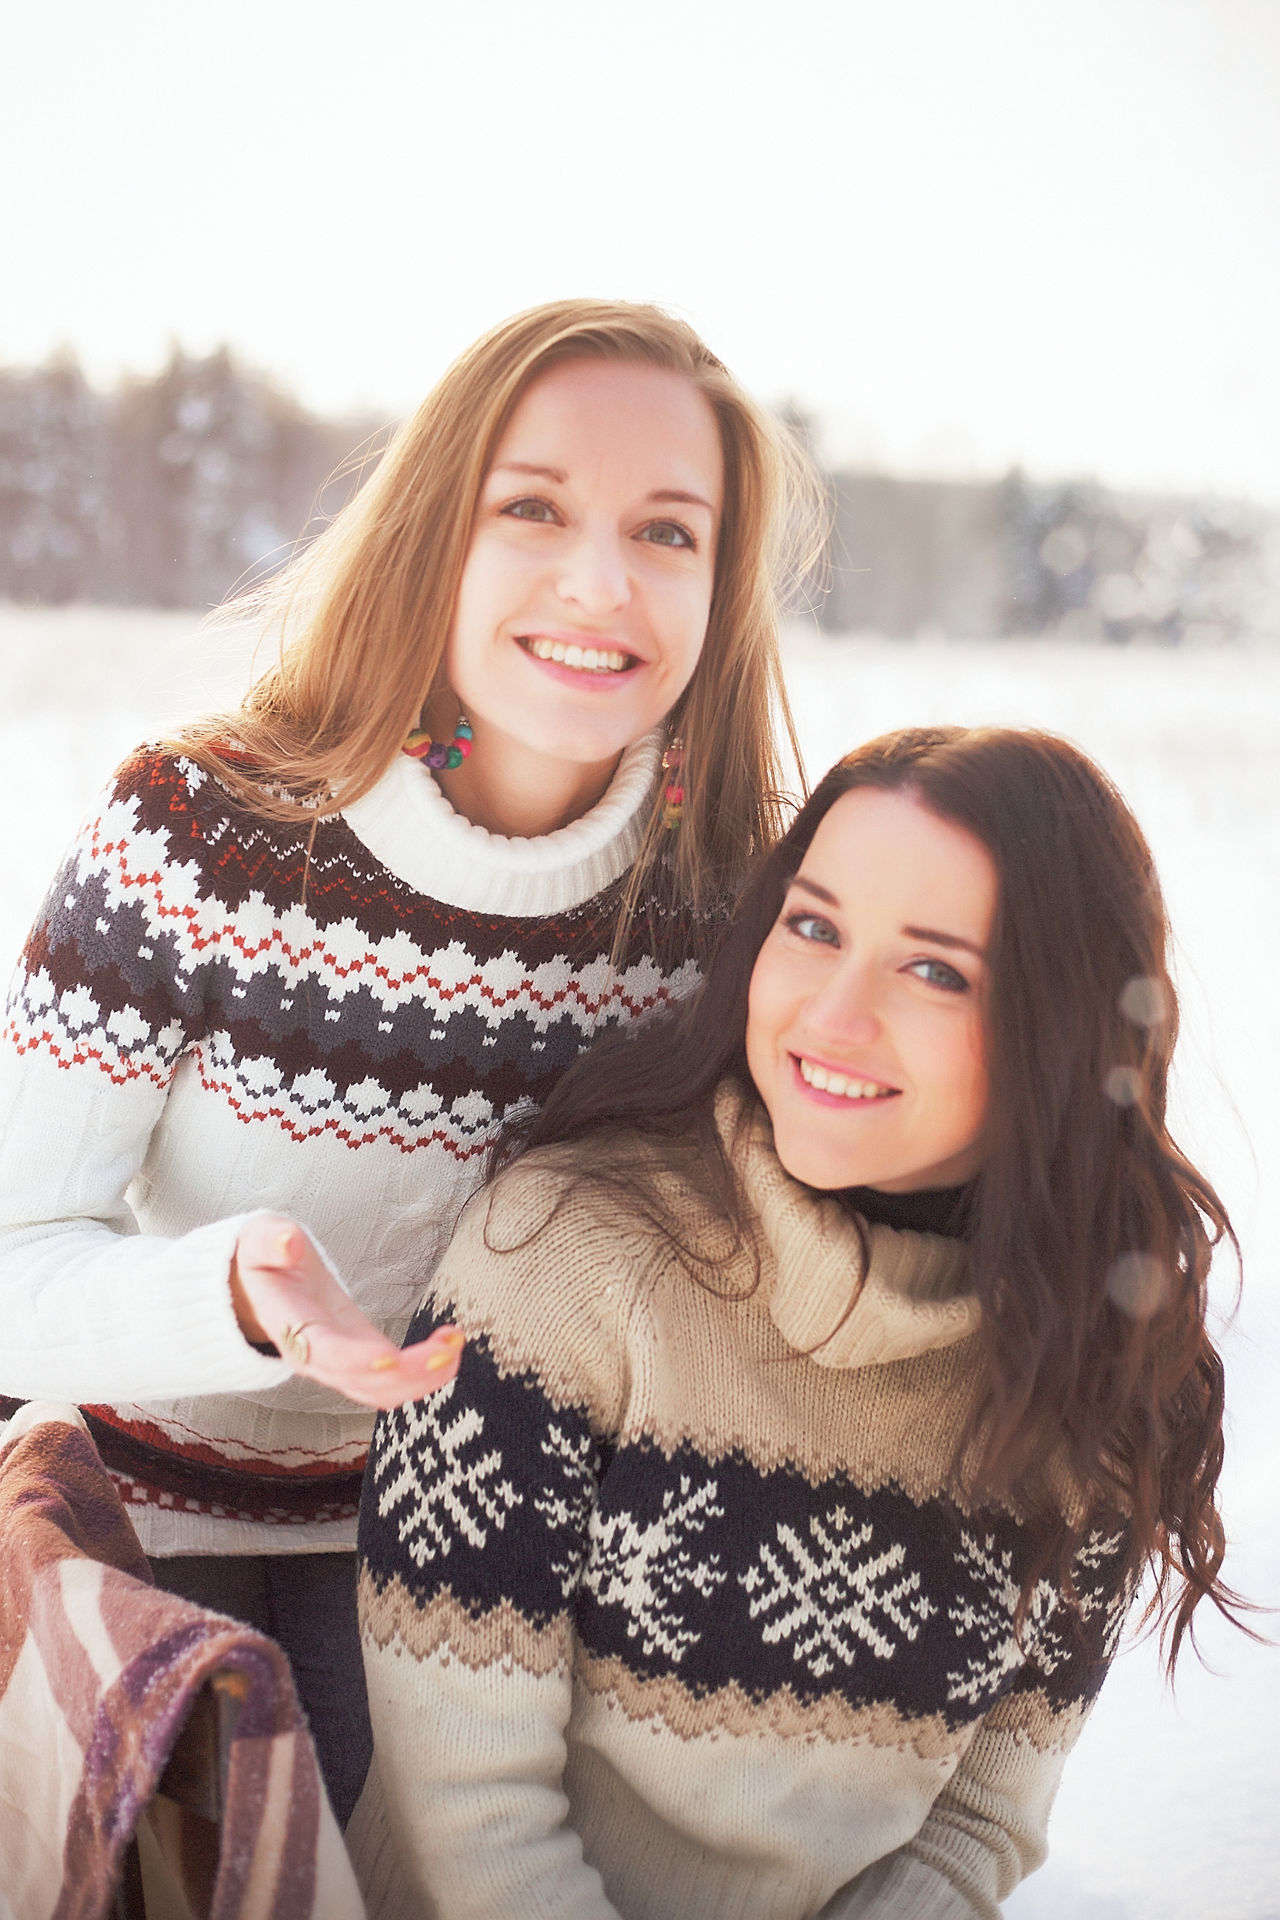 Two People Young Women Happiness Winter Women Friendship Smiling Portrait People Outdoors Day Gerl Gerl Portret Real People